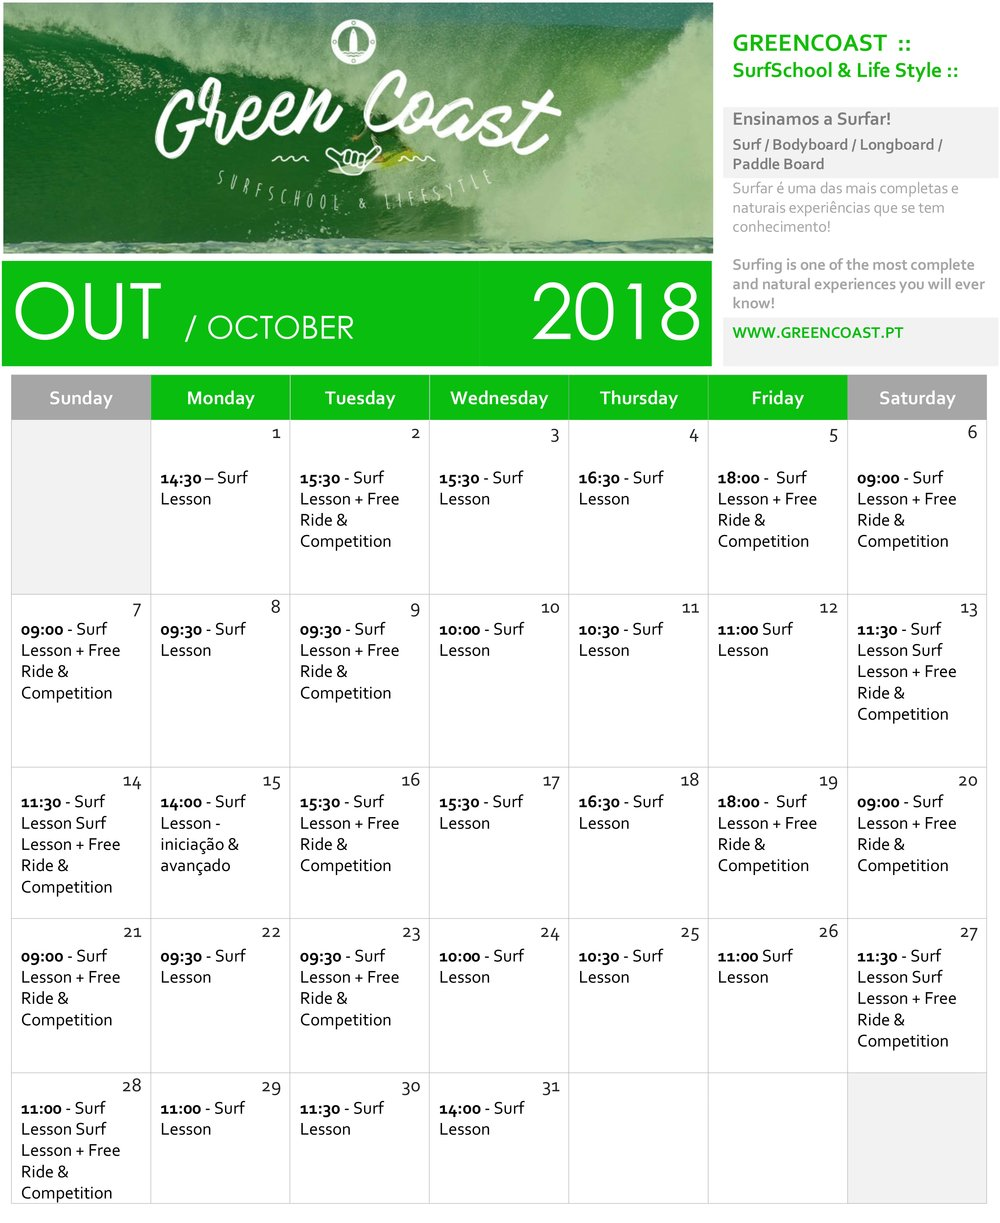 Horario de Outubro / October Schedule / Surf Lessons